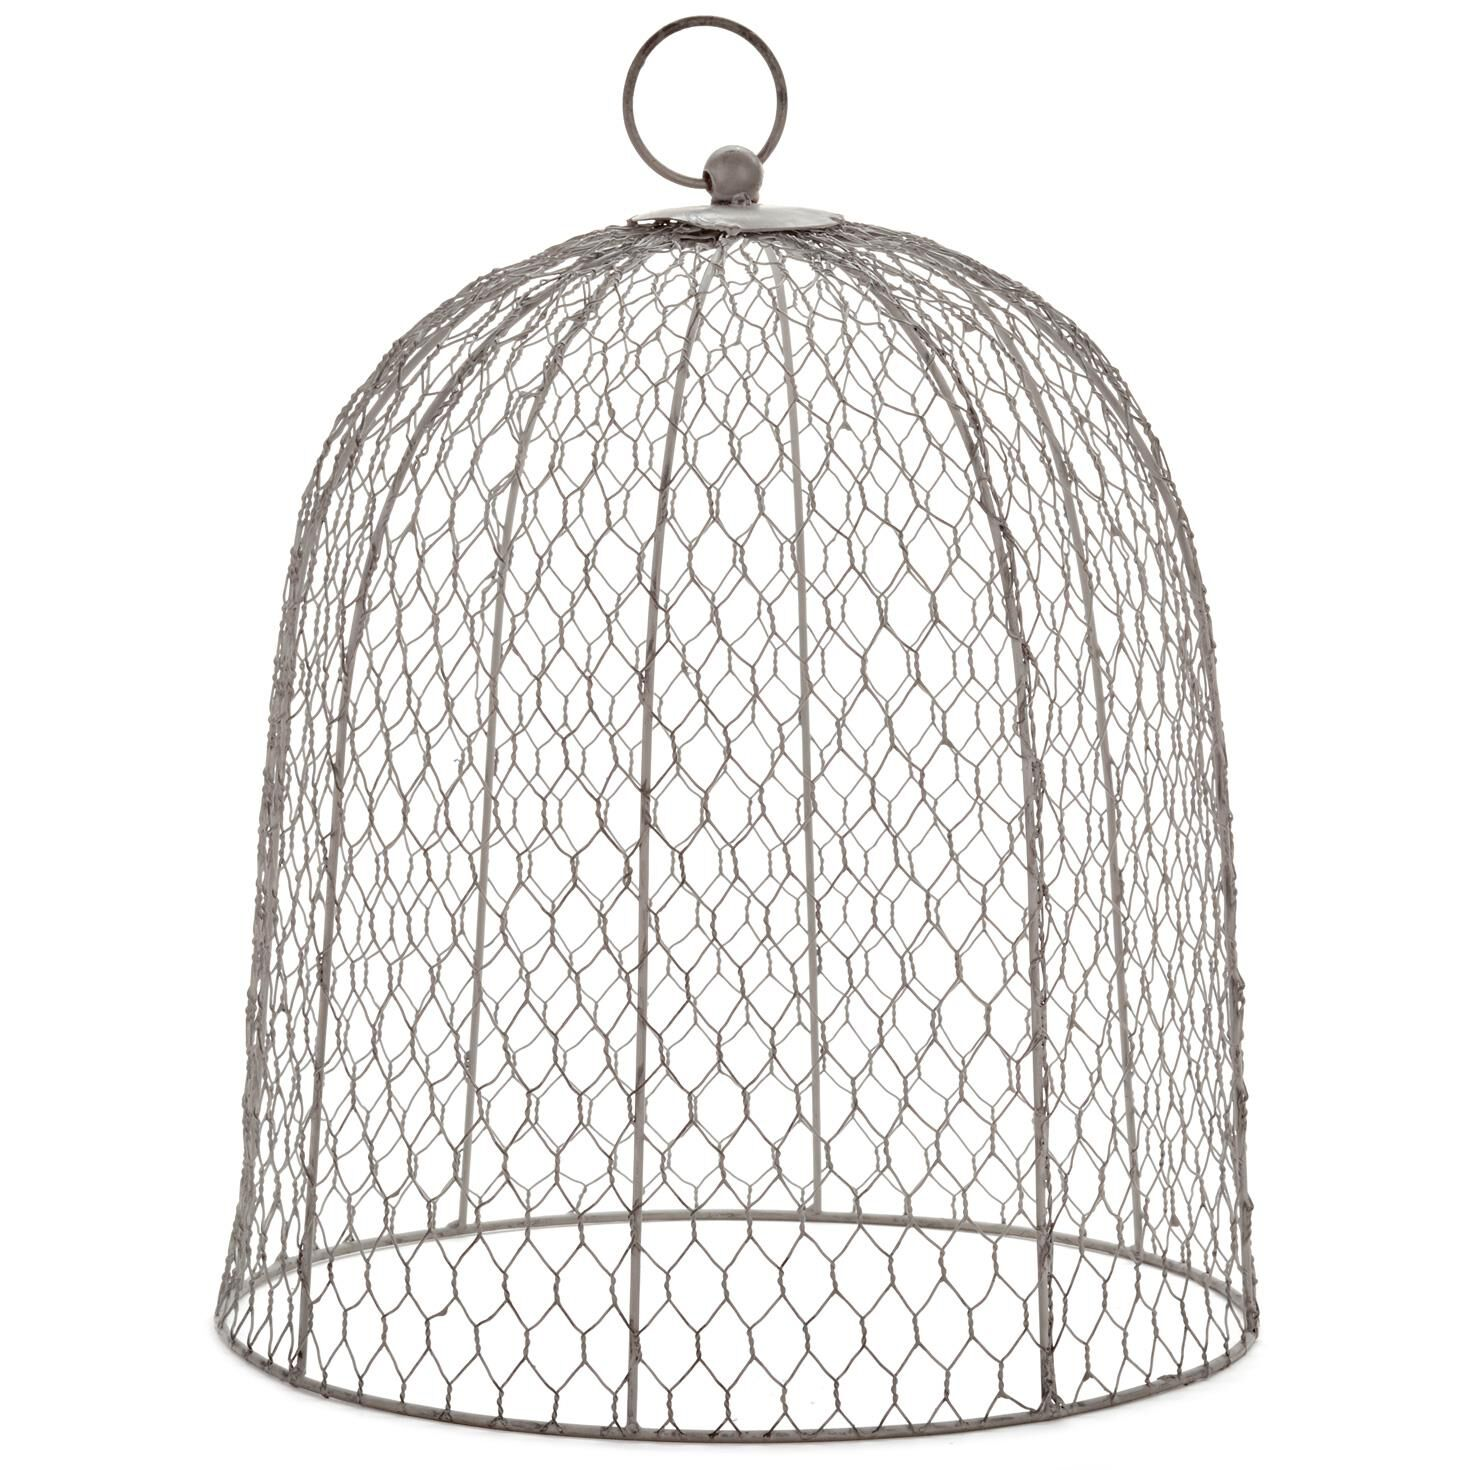 Chicken wire cloche decorative accessories hallmark